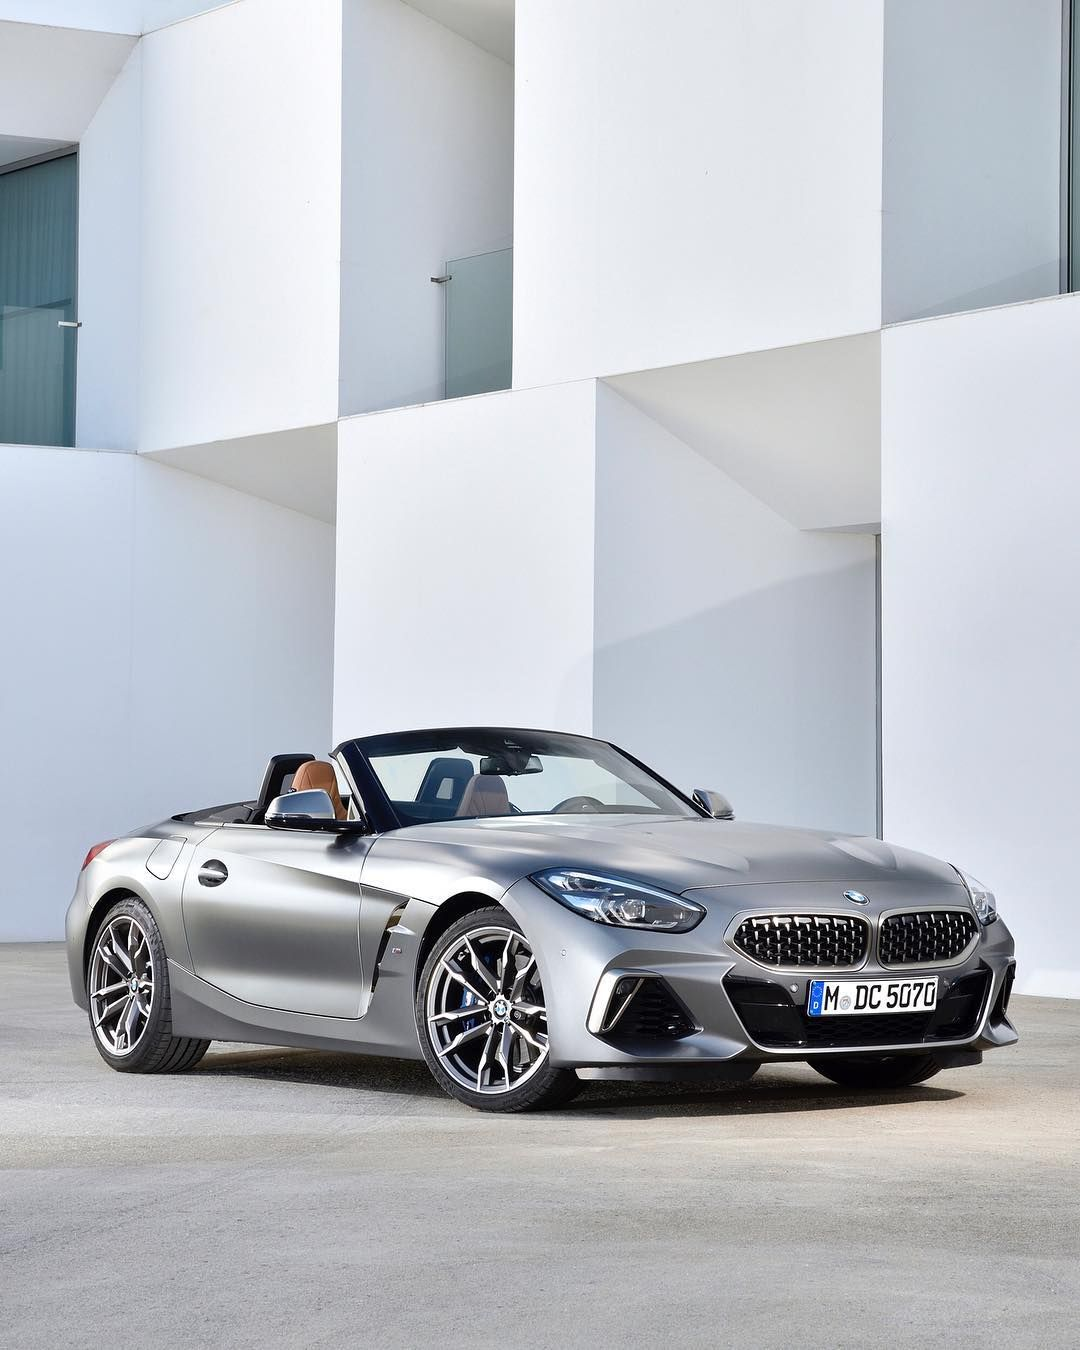 In Love With Classic Lines The All New Bmw Z4 Roadster Bmw Z4 Bmw Z4 M40 Bmw Z4 Roadster Bmw Z4 Bmw